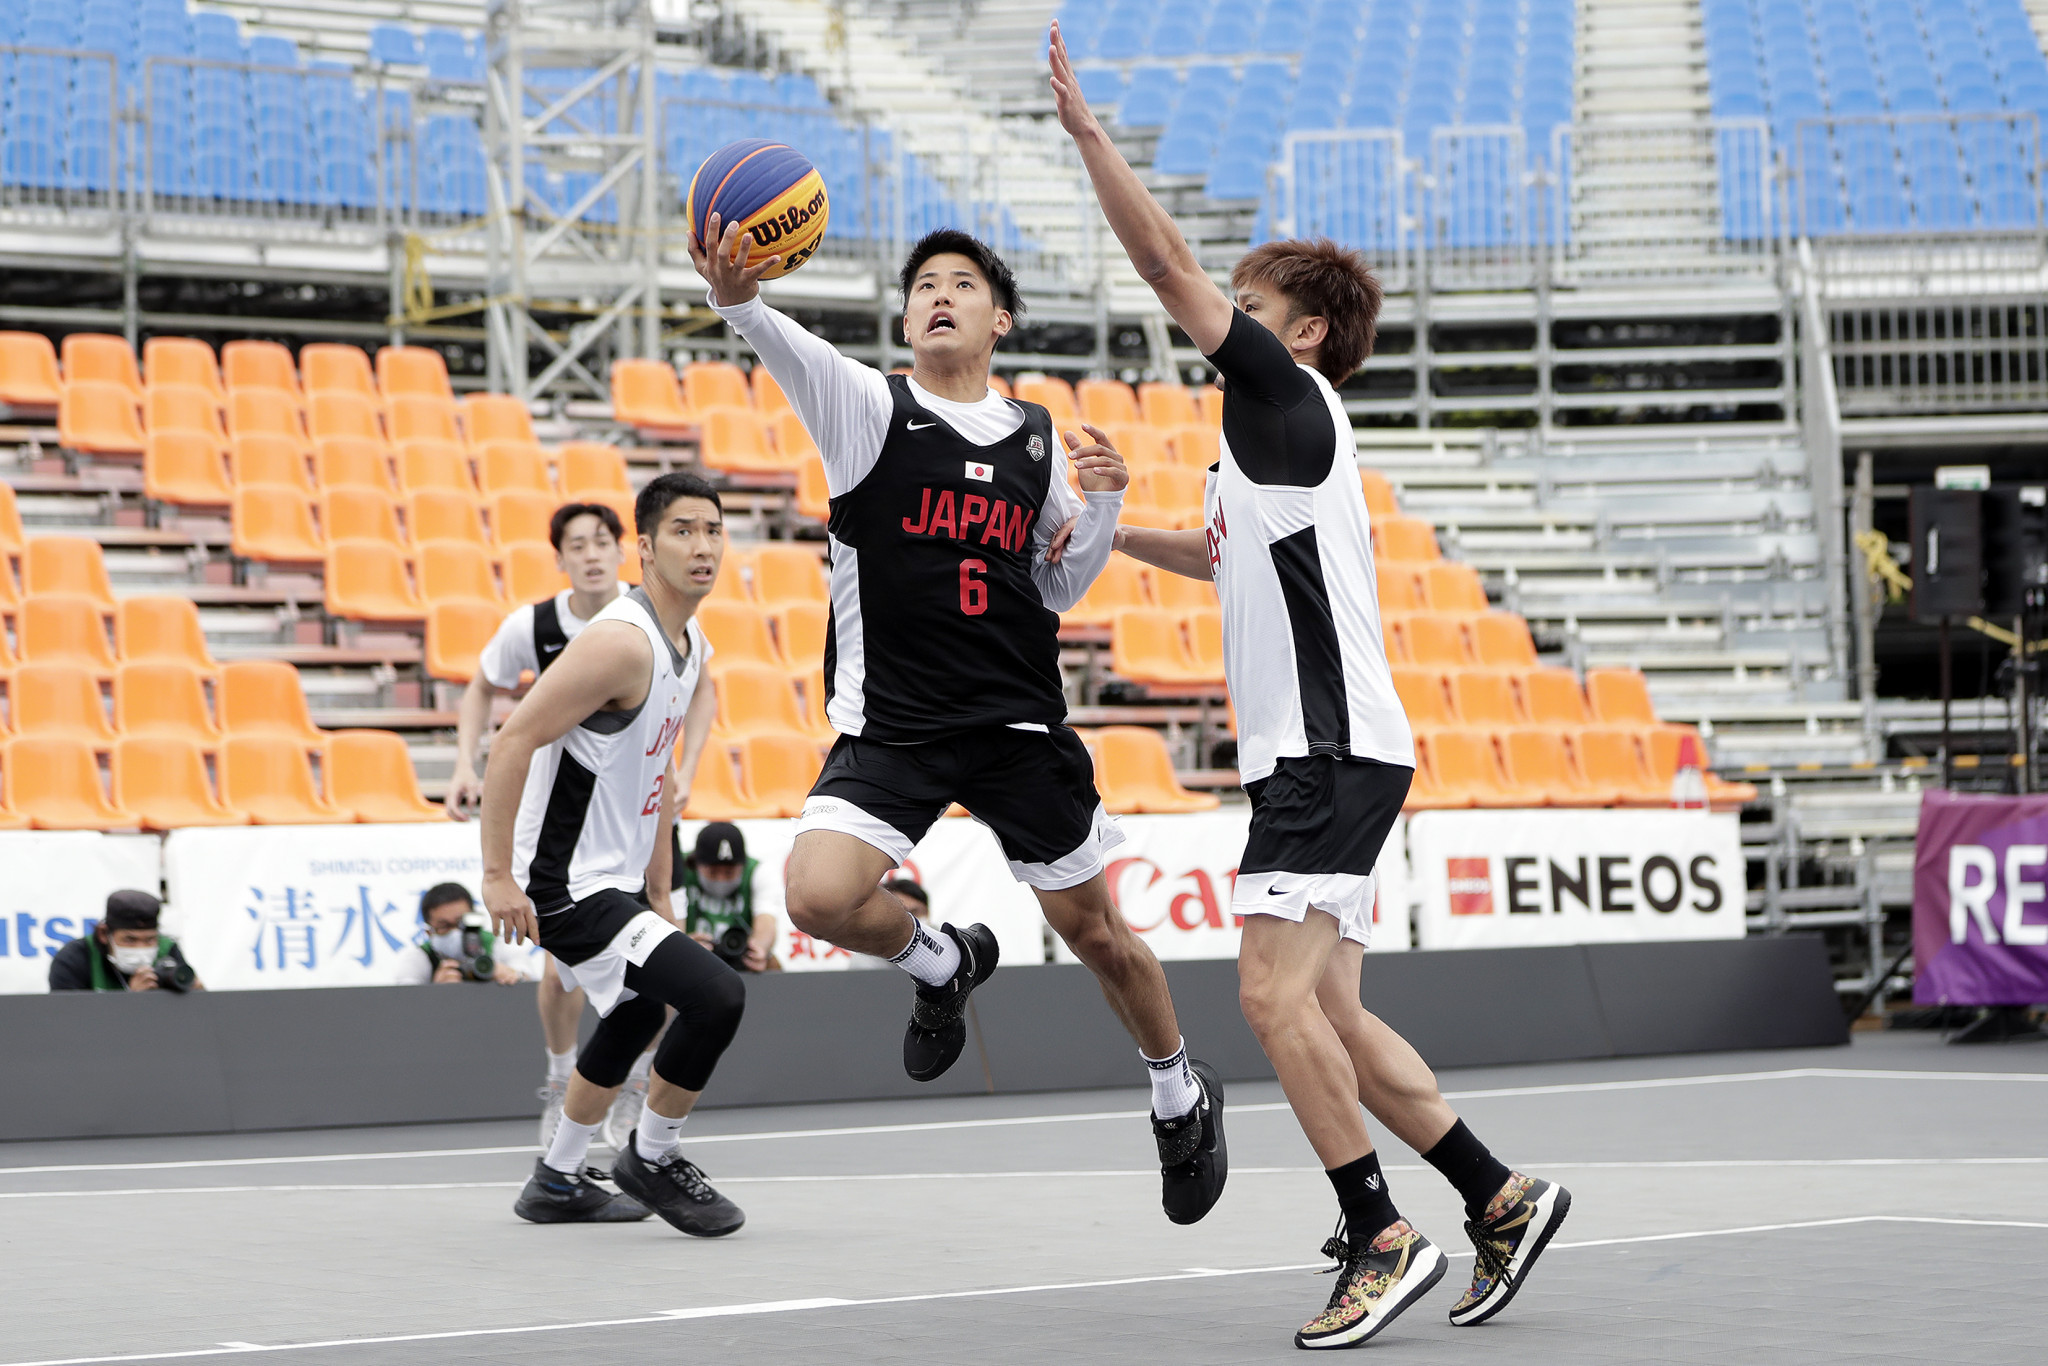 Tokyo stages 3x3 basketball test event prior to sport's Olympic debut